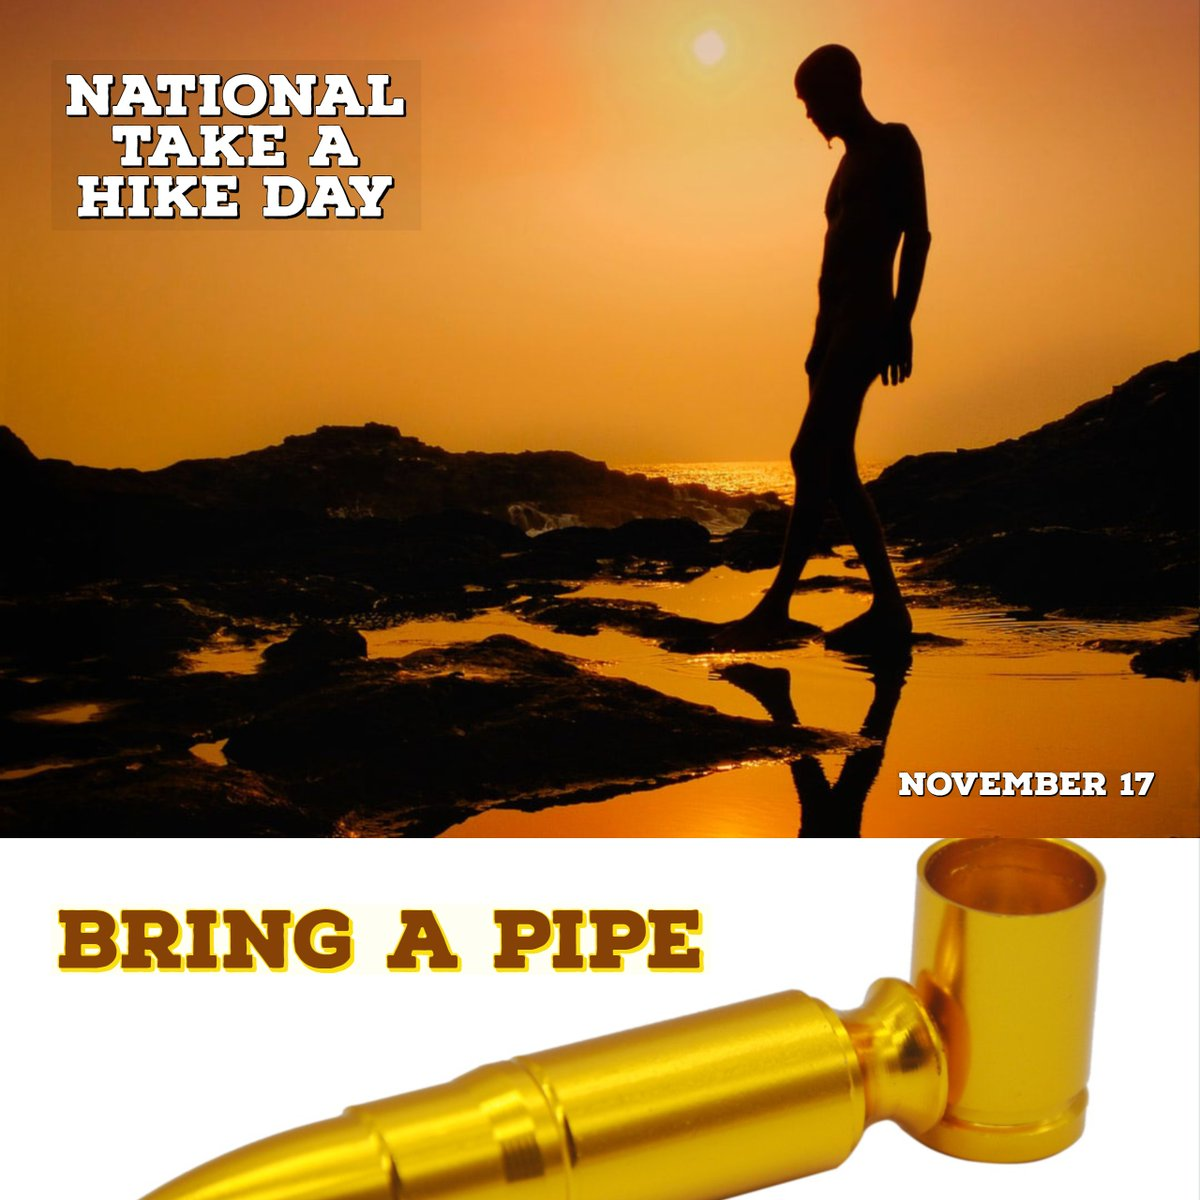 National Take a Hike Day - Bring a Pipe    #phsinternational  #NationalTakeaHikeDay #hike #hiking #pipe #potpipe #weed #exercise #thc  #retail #sales